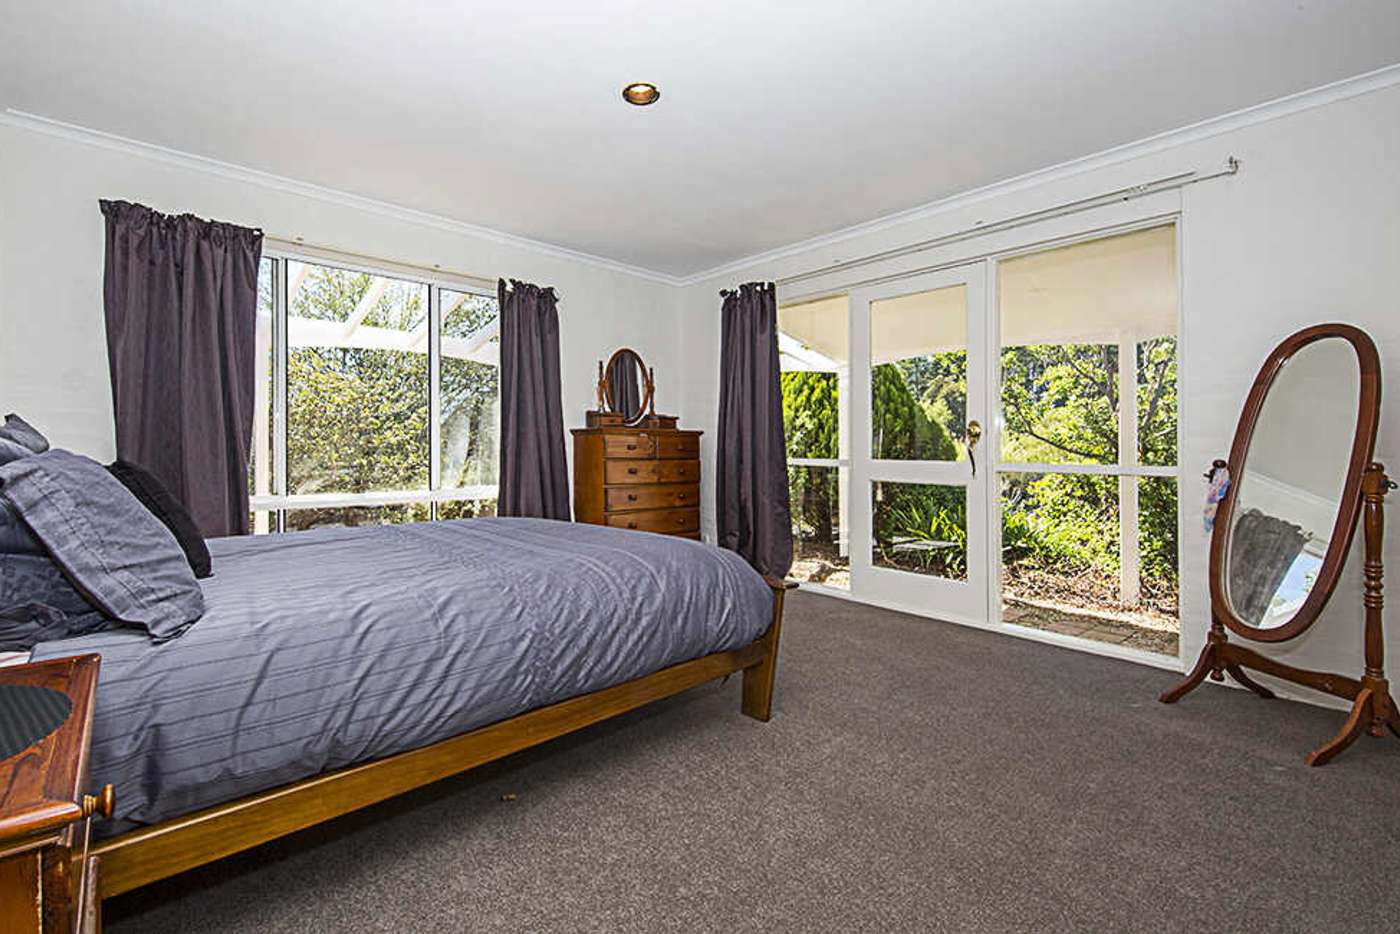 Seventh view of Homely house listing, 197 Marked Tree Road, Gundaroo NSW 2620